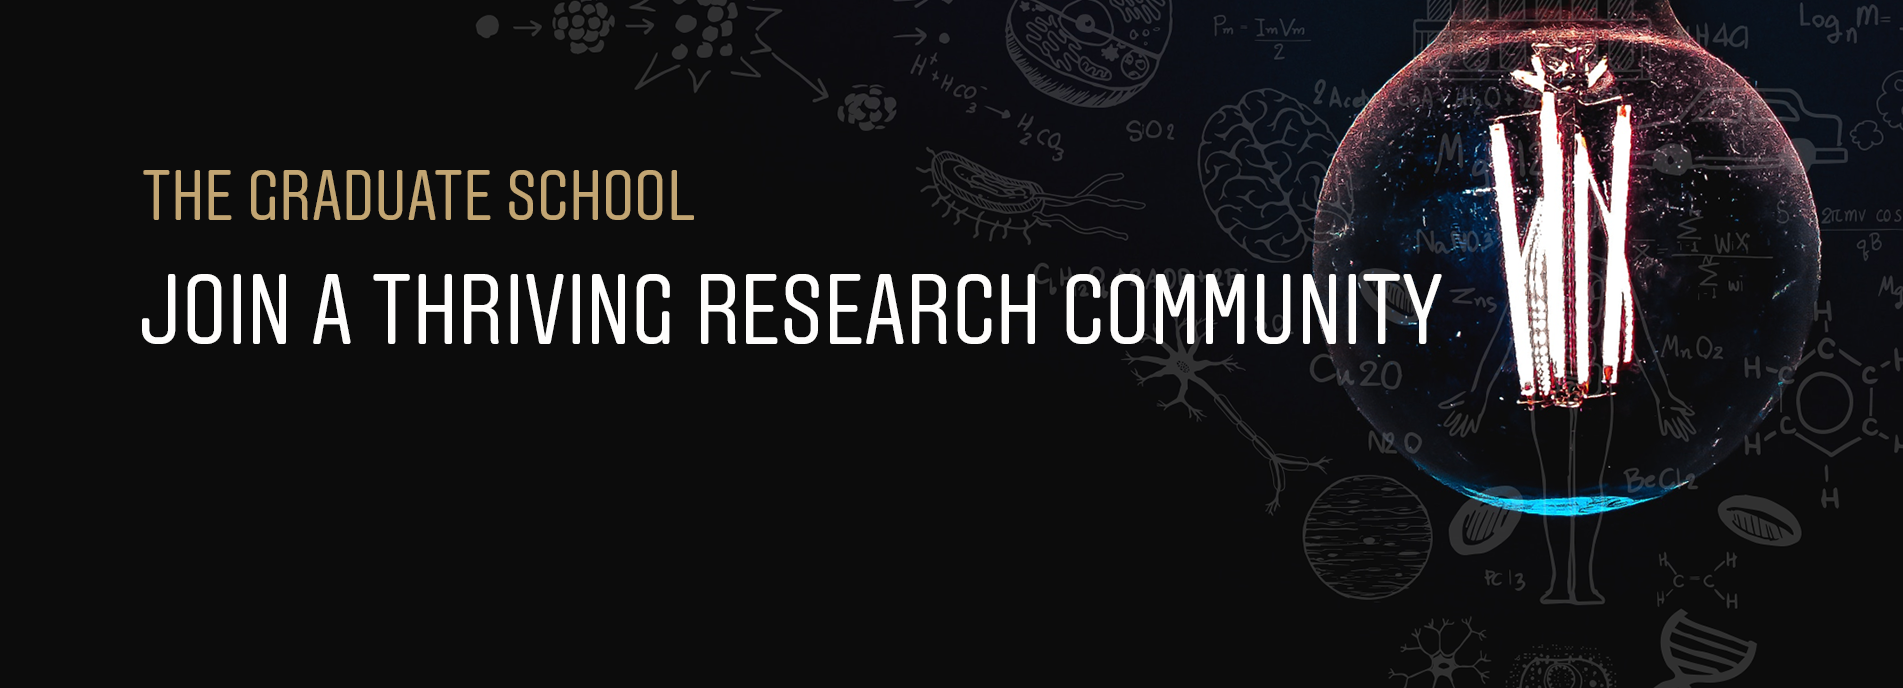 The Graduate School - Join a thriving research community